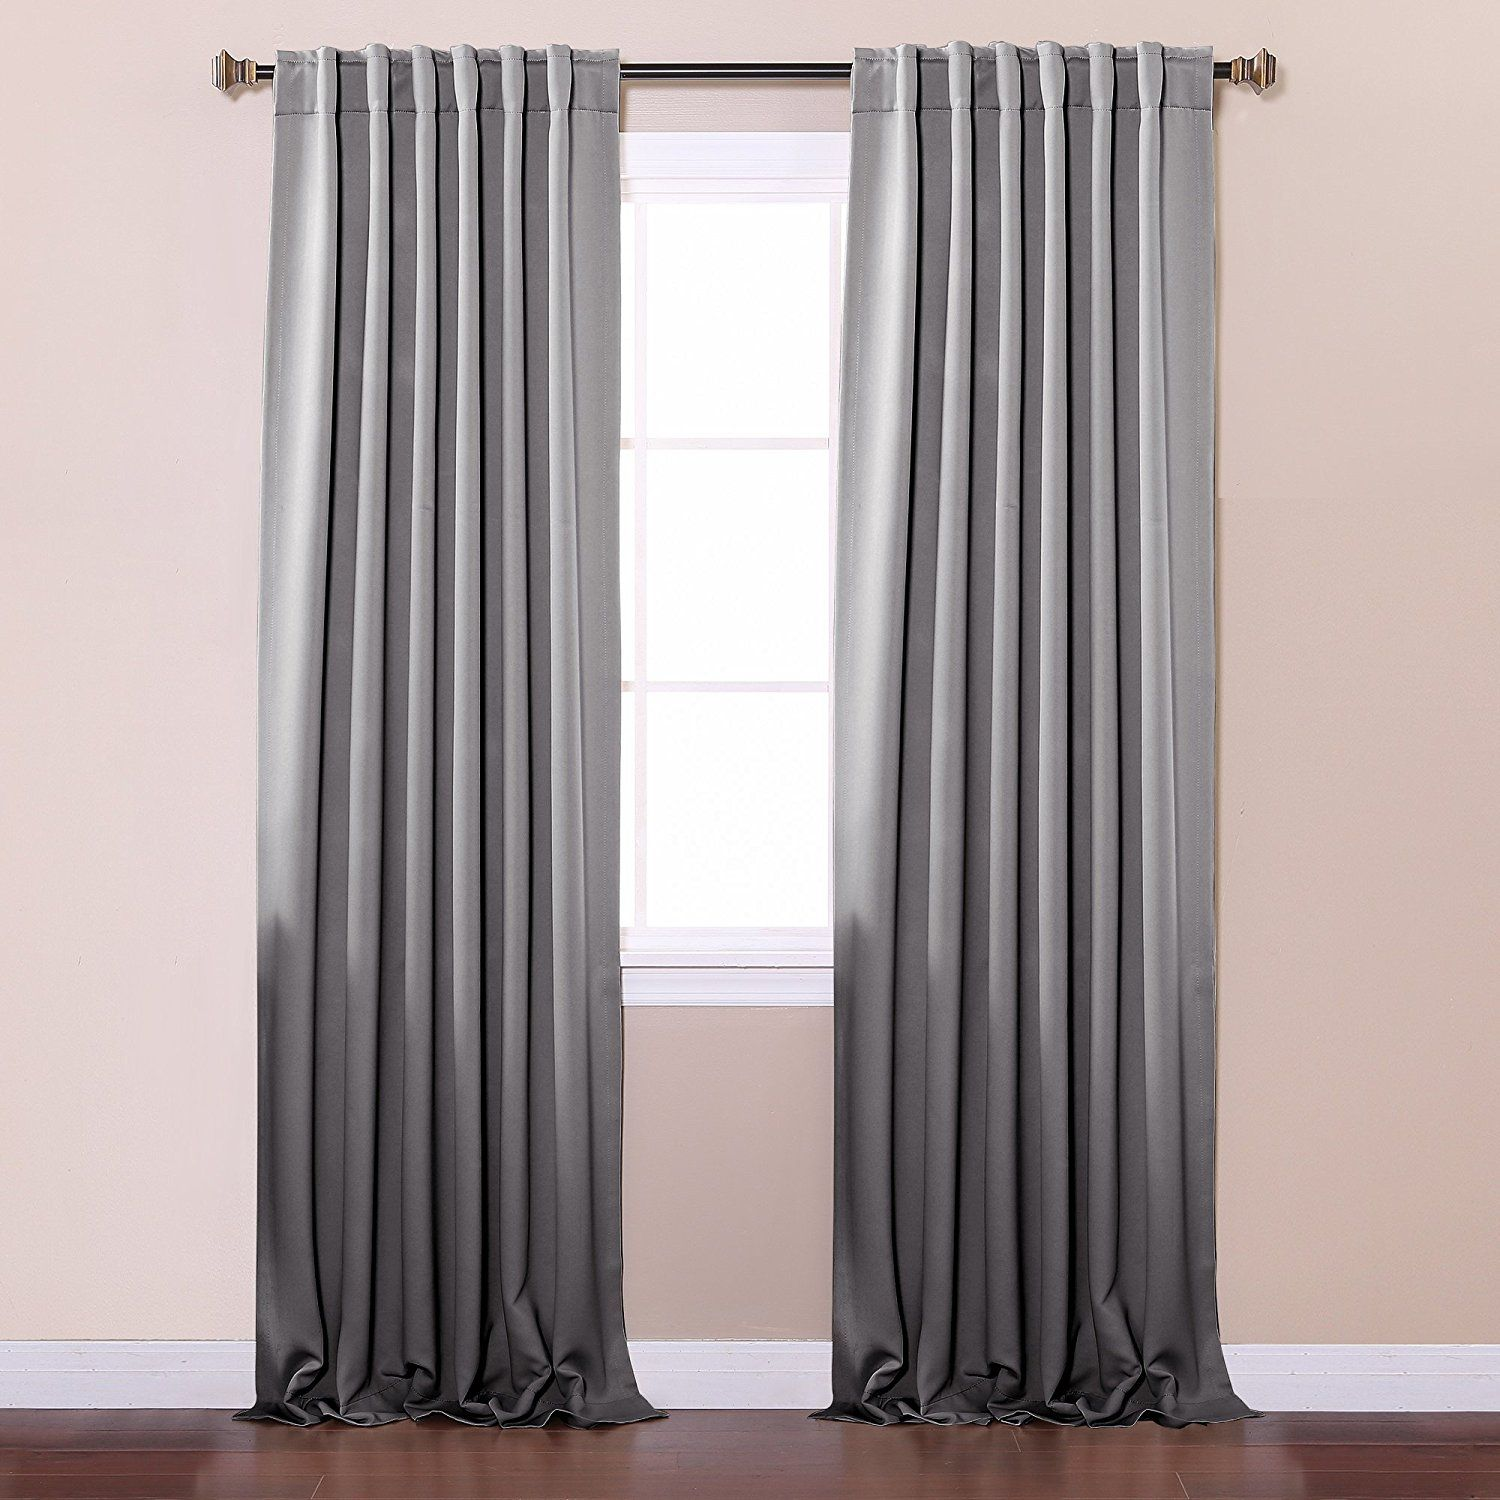 fashion insulated com panel on images pinterest of thermal curtain home panels curtains best unique amazon doors wide width lively patio blackout for